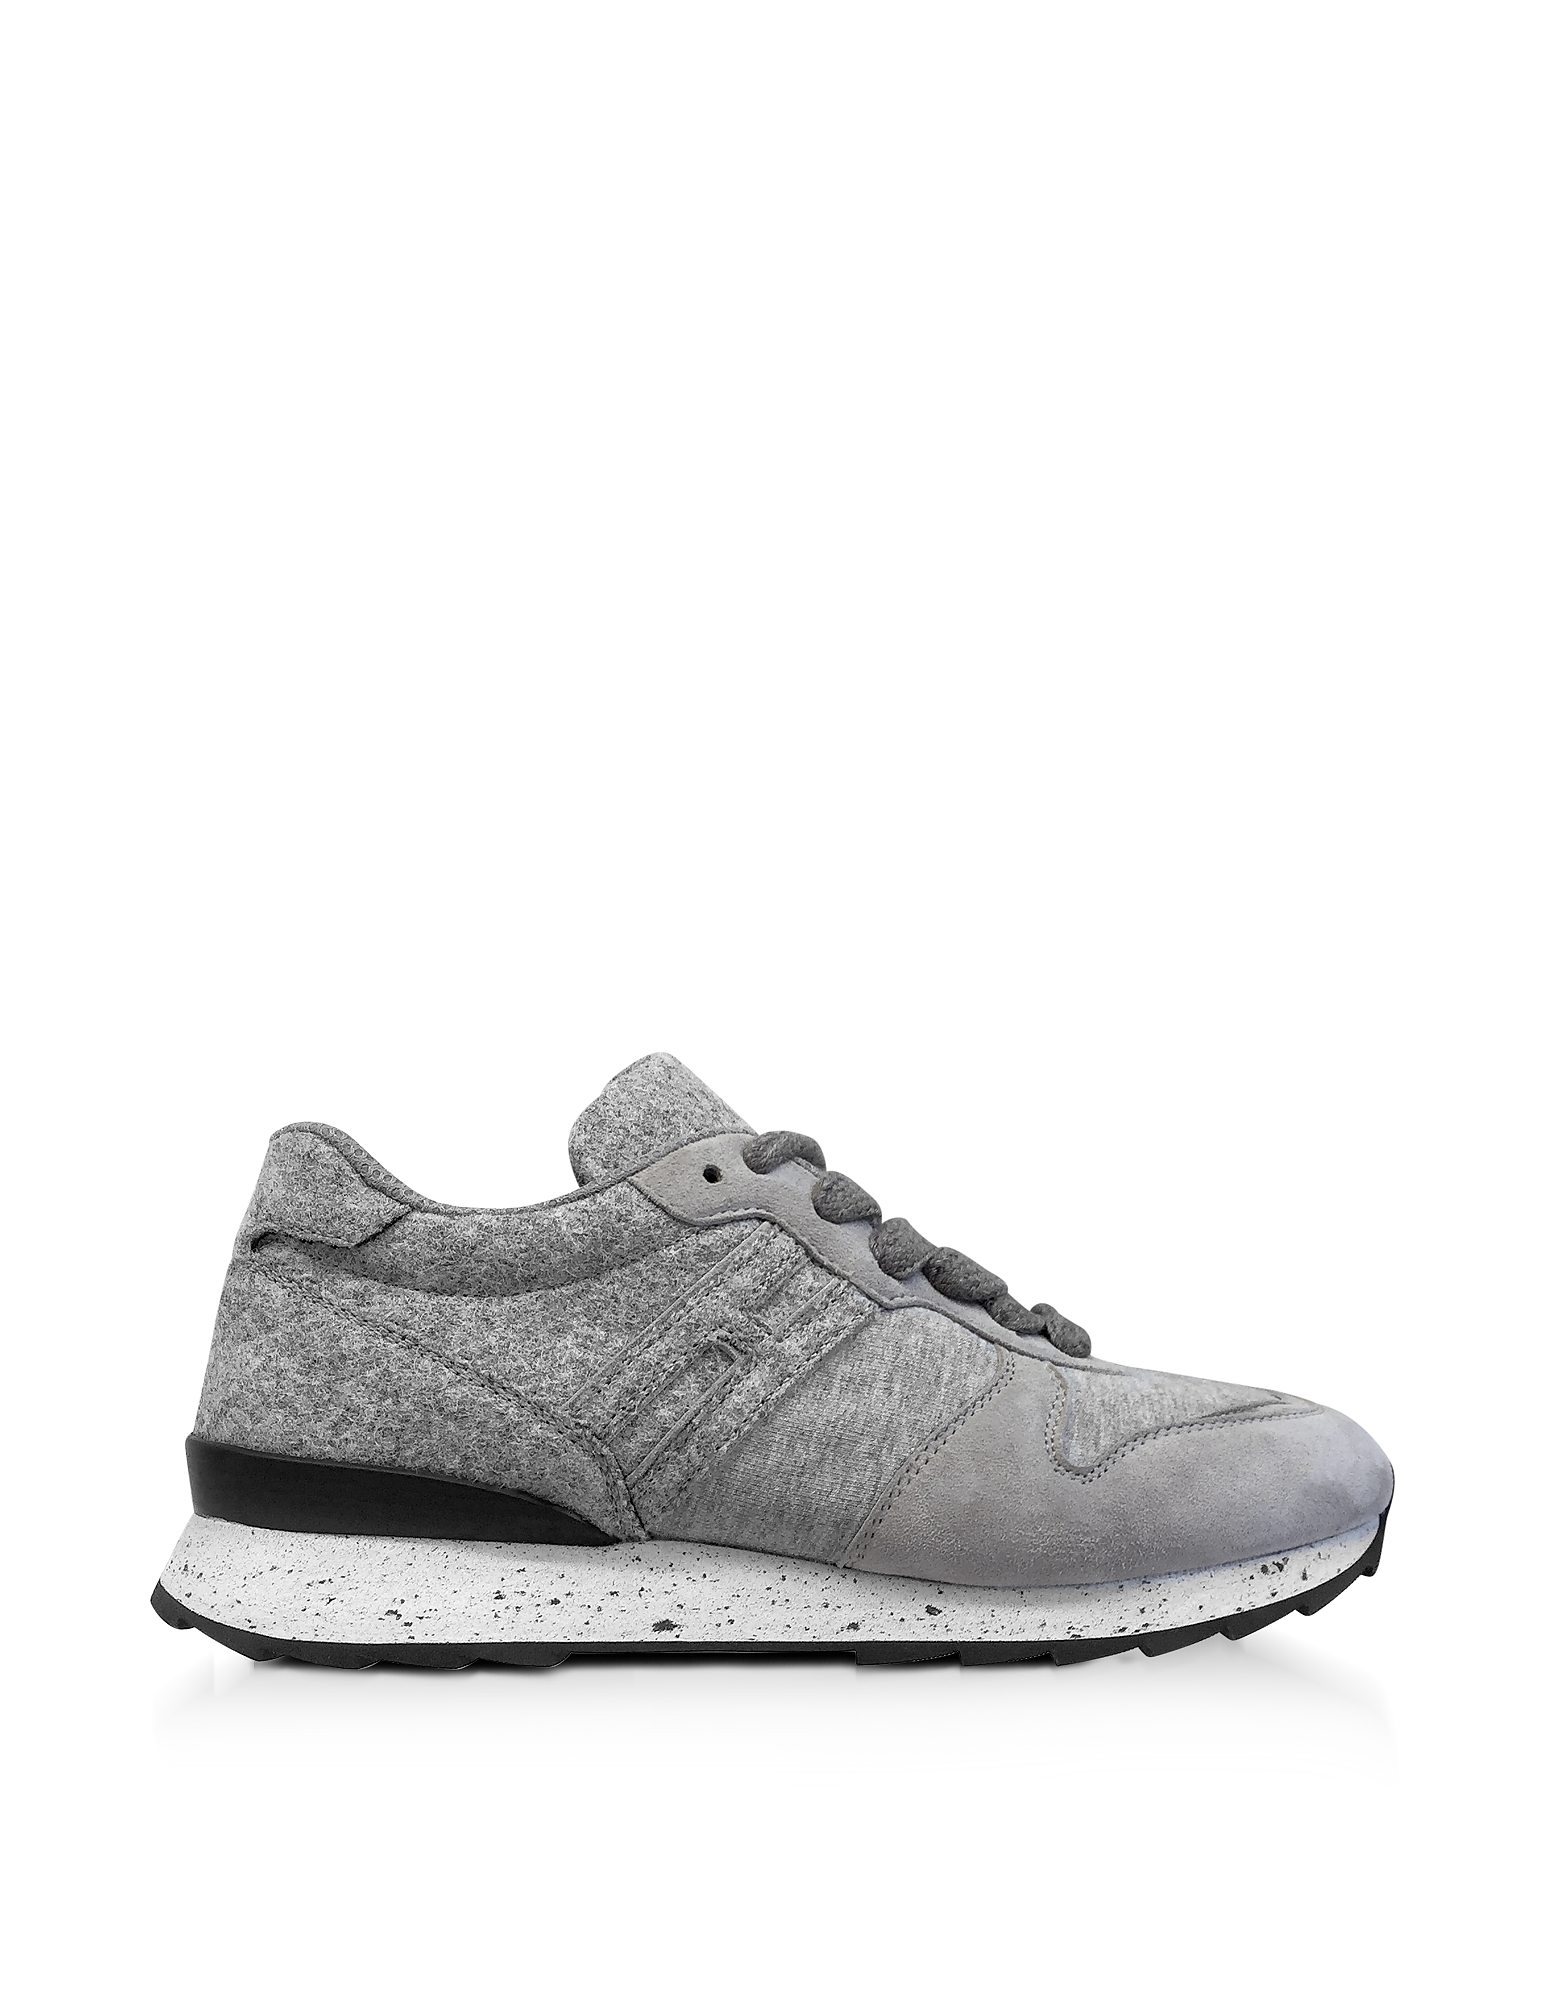 Hogan Shoes, Running R261 Gray Felt and Suede Sneakers